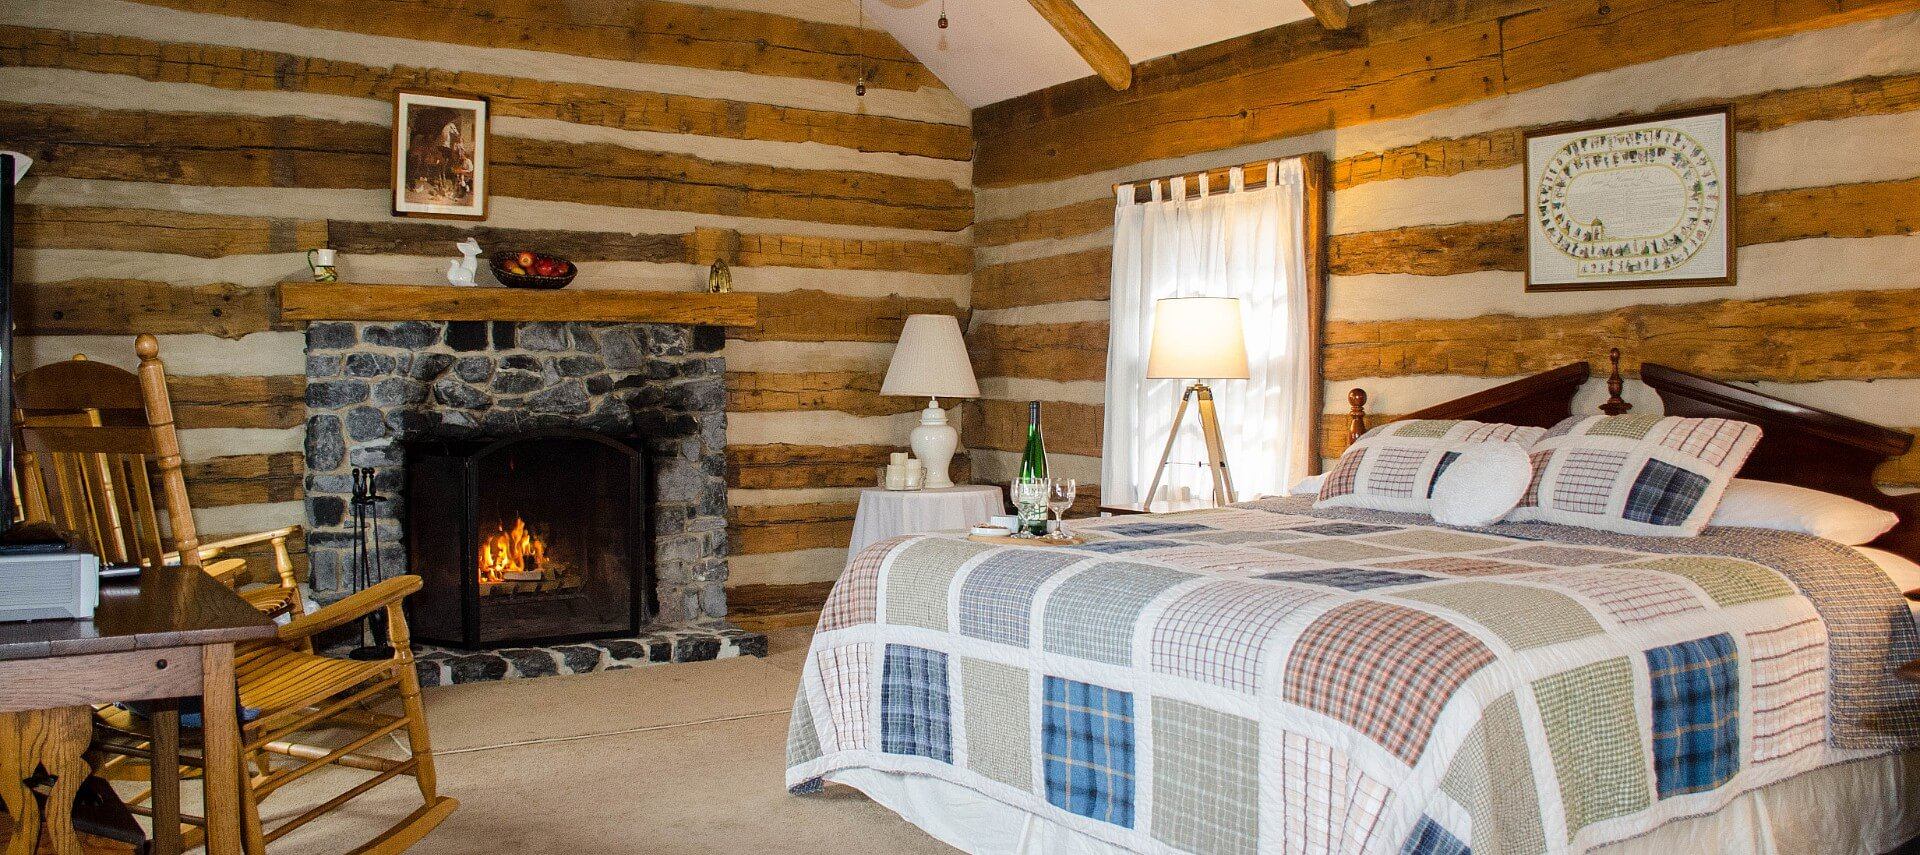 A log cabin room complete with a queen bed, window with white curtains, desk and chair, and a dark grey stone fireplace.